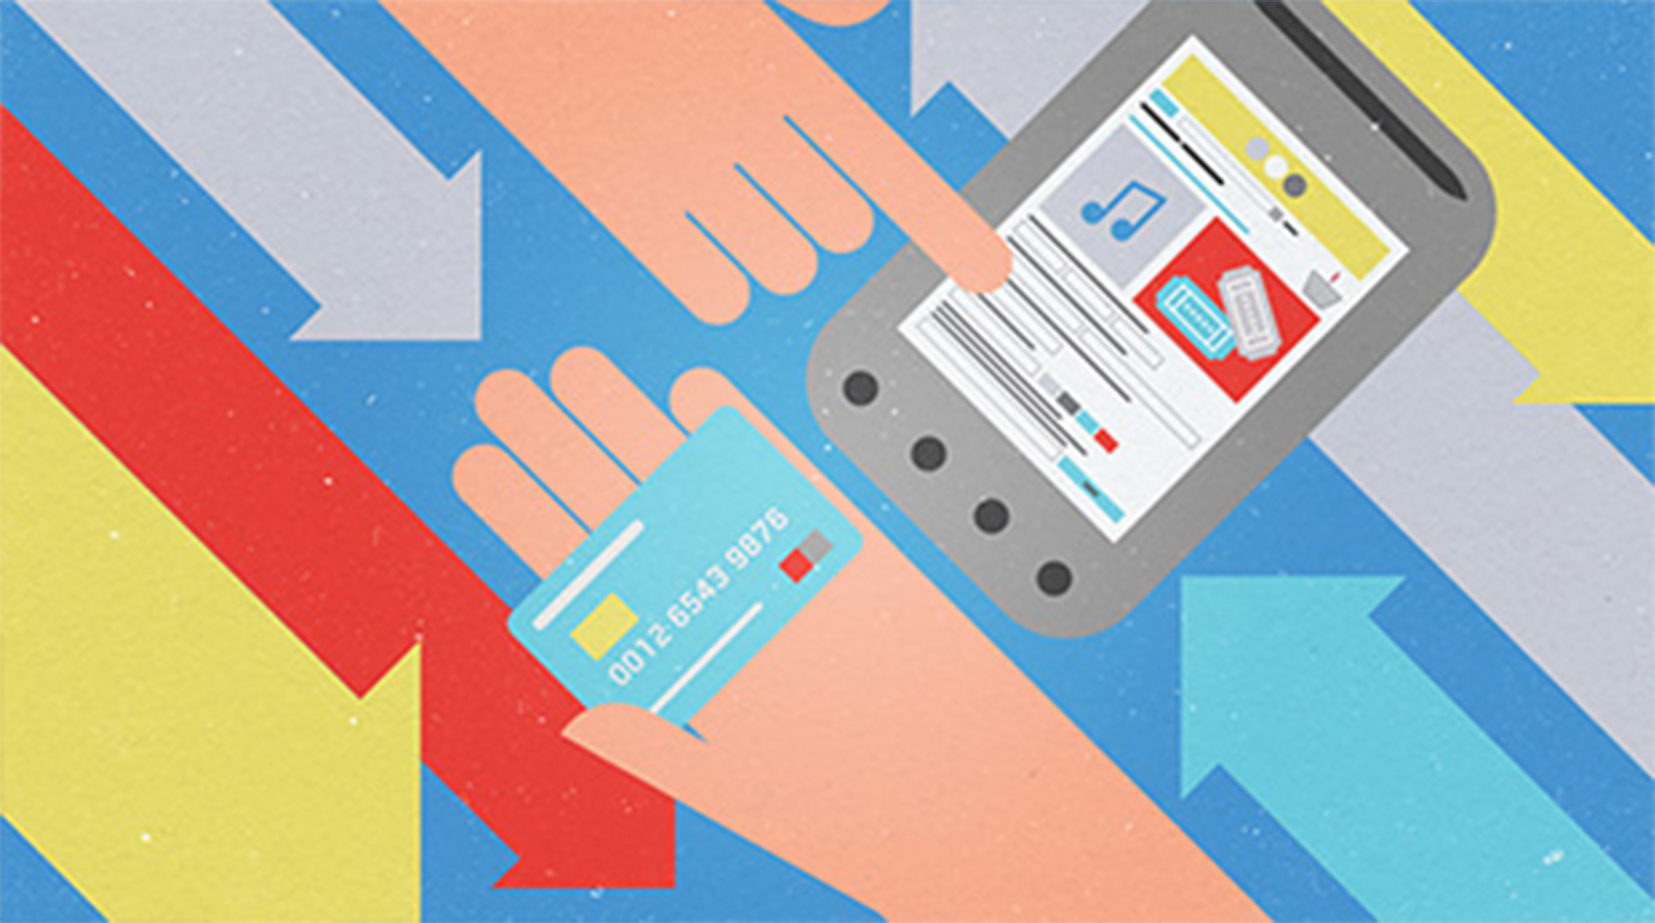 Illustration of ads on a mobile device and a hand holding a credit card with arrows moving diagonally in the background in both directions